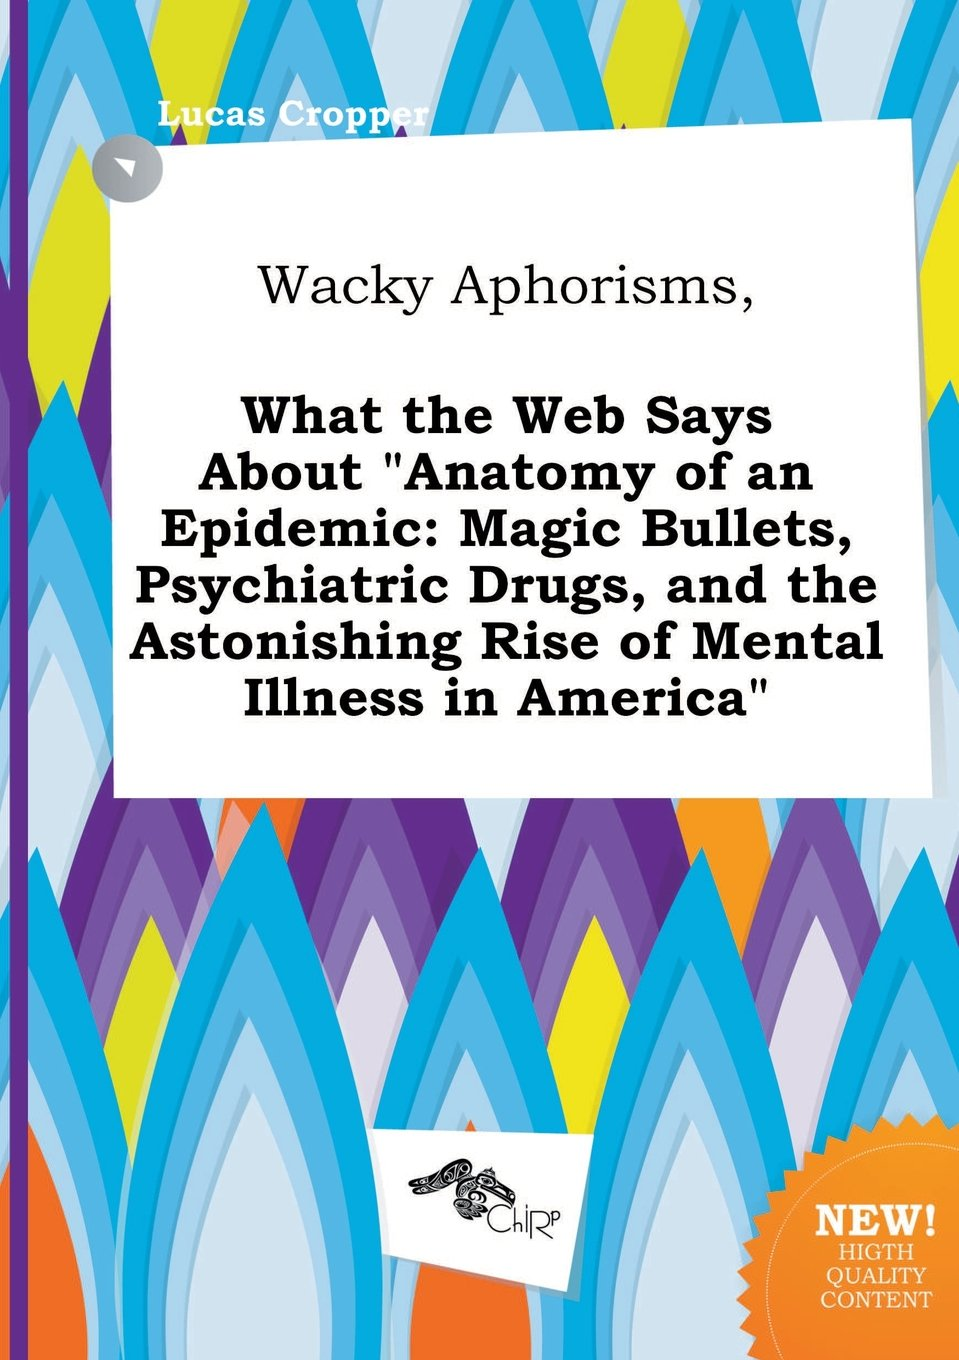 Wacky Aphorisms, What the Web Says about Anatomy of an Epidemic ...